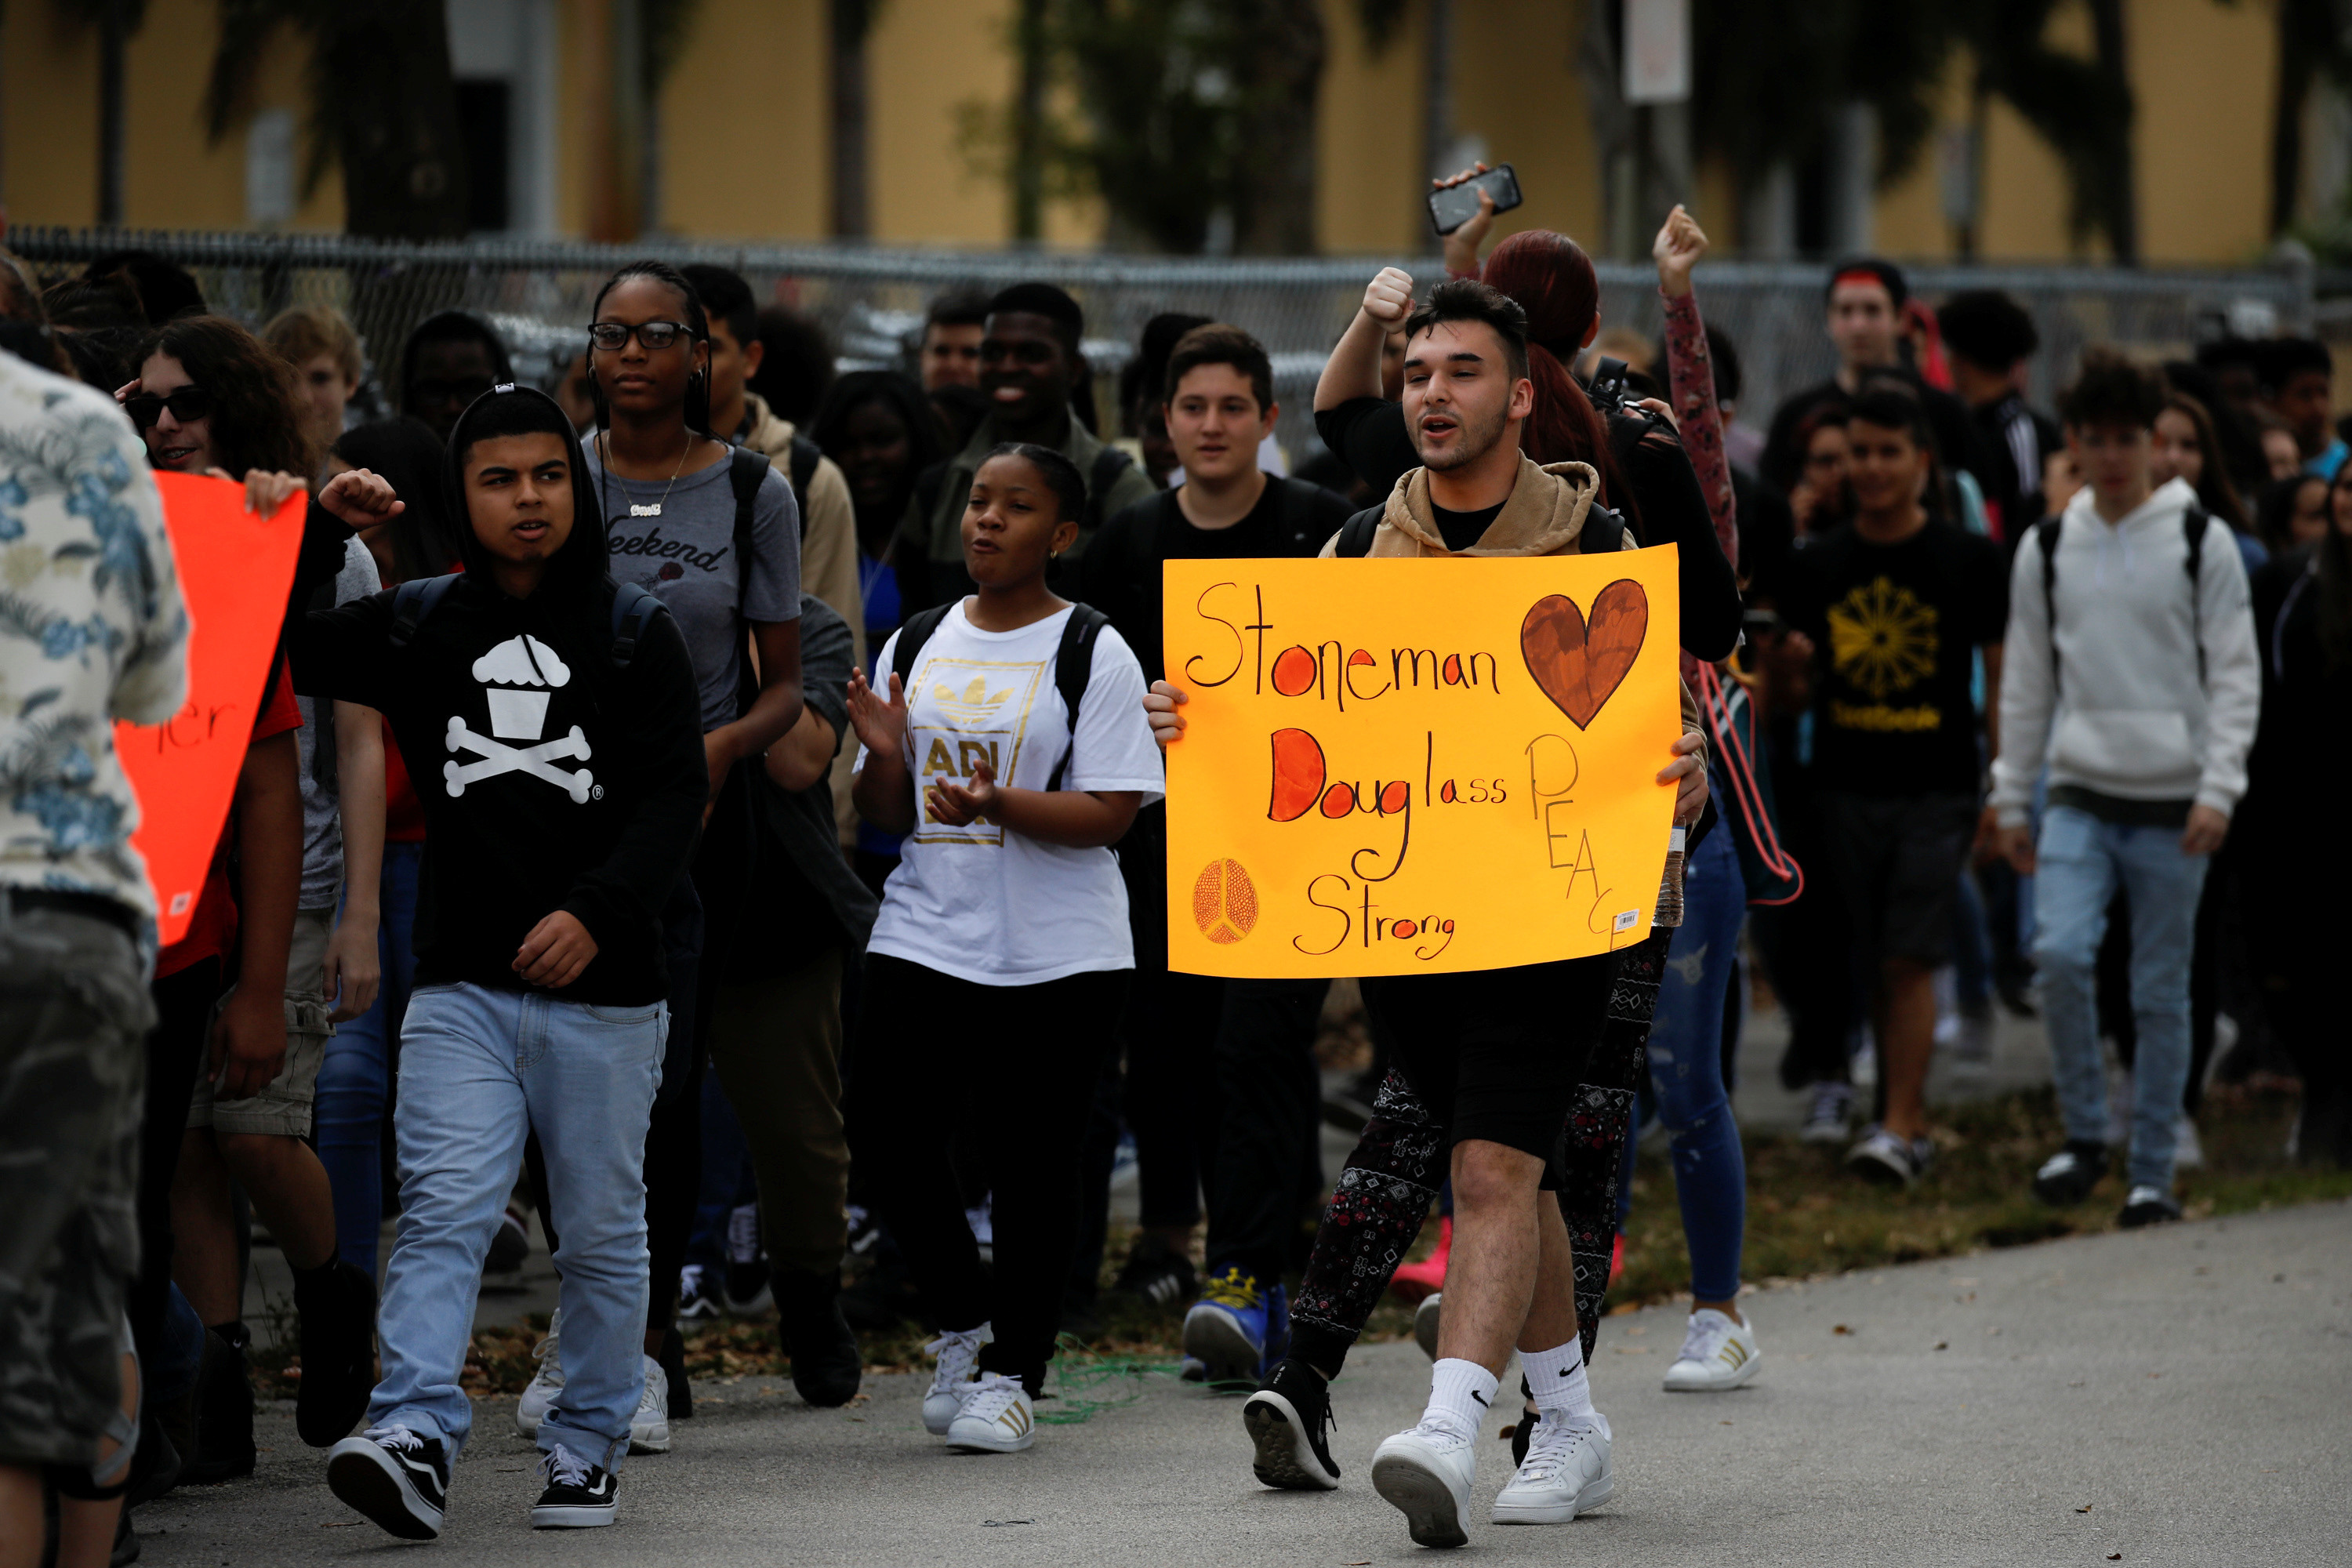 Students in Florida march in support of gun control.